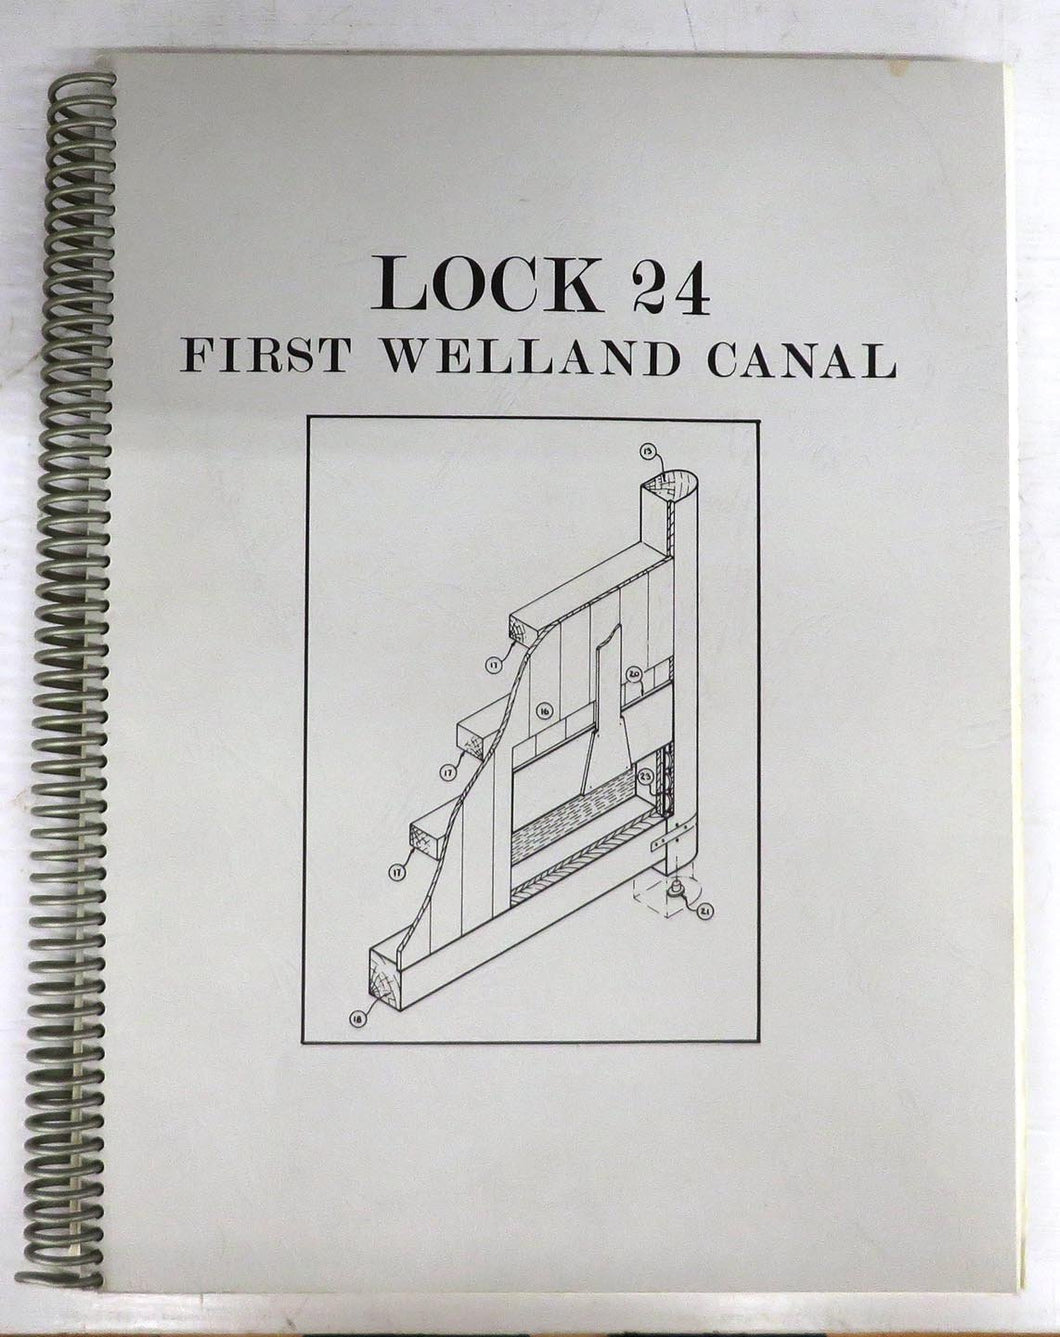 Lock 24, First Welland Canal